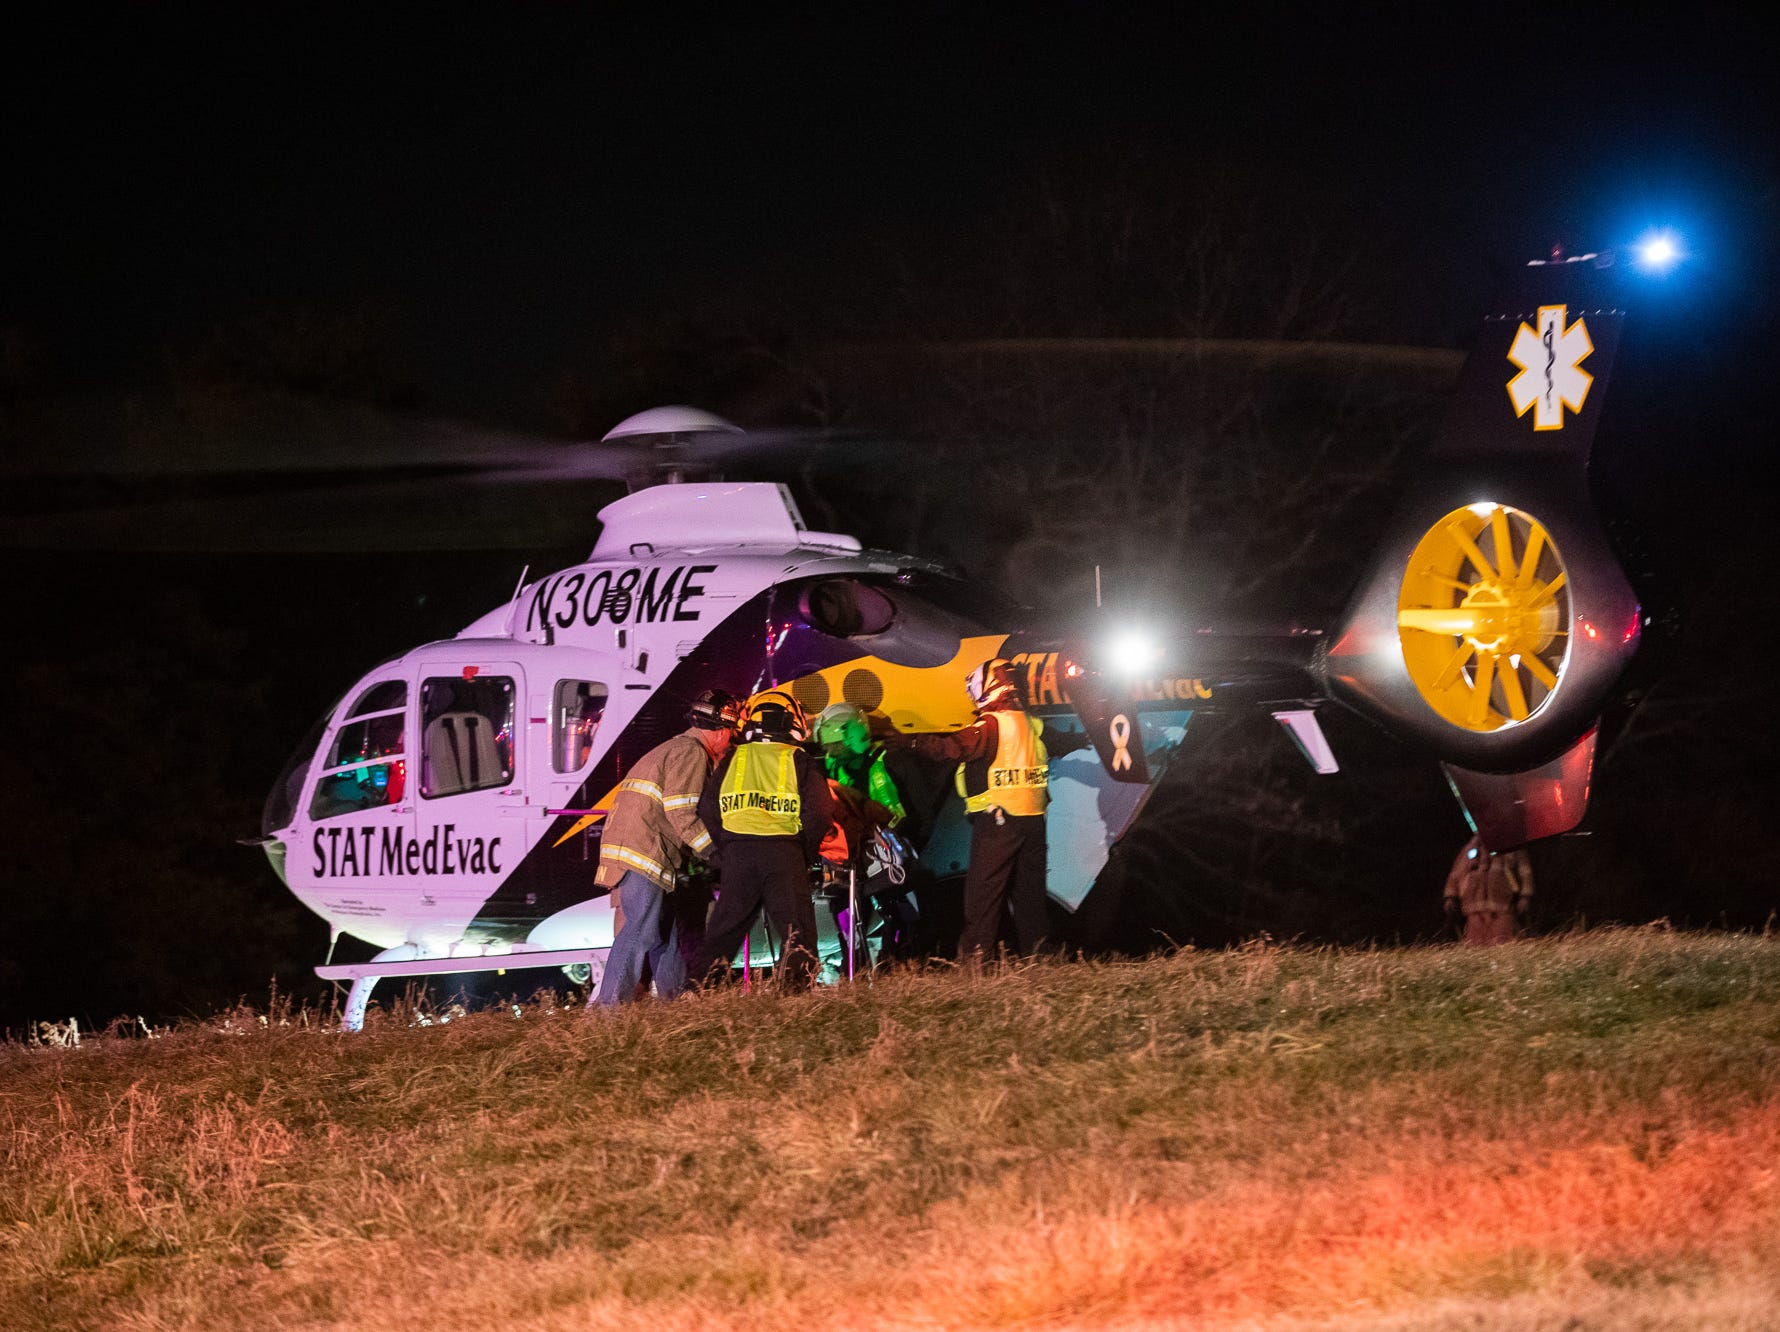 Crews transport a patient to a waiting medical helicopter at the scene of crash on the 2200 block of East Berlin Road, Monday, Dec. 24, 2018, in Reading Township.